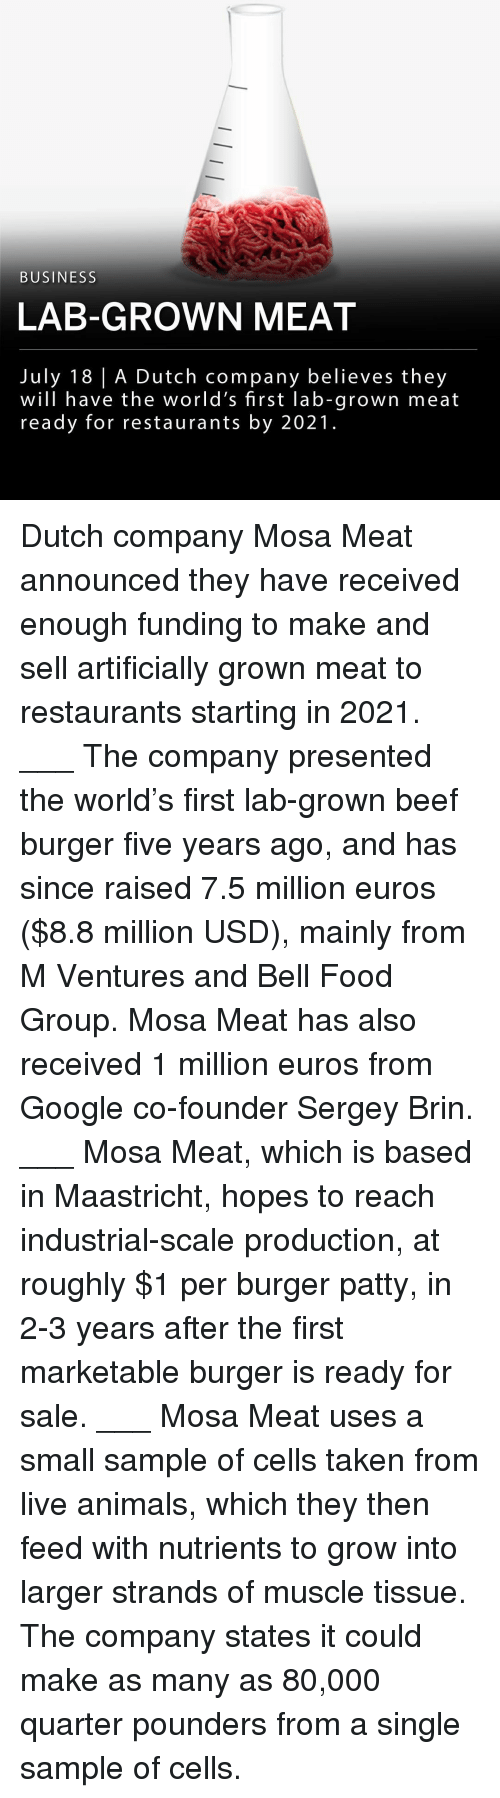 Animals, Beef, and Food: BUSINESS  LAB-GROWN MEAT  July 18 | A Dutch company believes they  will have the world's first lab-grown meat  ready for restaurants by 2021 Dutch company Mosa Meat announced they have received enough funding to make and sell artificially grown meat to restaurants starting in 2021. ___ The company presented the world's first lab-grown beef burger five years ago, and has since raised 7.5 million euros ($8.8 million USD), mainly from M Ventures and Bell Food Group. Mosa Meat has also received 1 million euros from Google co-founder Sergey Brin. ___ Mosa Meat, which is based in Maastricht, hopes to reach industrial-scale production, at roughly $1 per burger patty, in 2-3 years after the first marketable burger is ready for sale. ___ Mosa Meat uses a small sample of cells taken from live animals, which they then feed with nutrients to grow into larger strands of muscle tissue. The company states it could make as many as 80,000 quarter pounders from a single sample of cells.